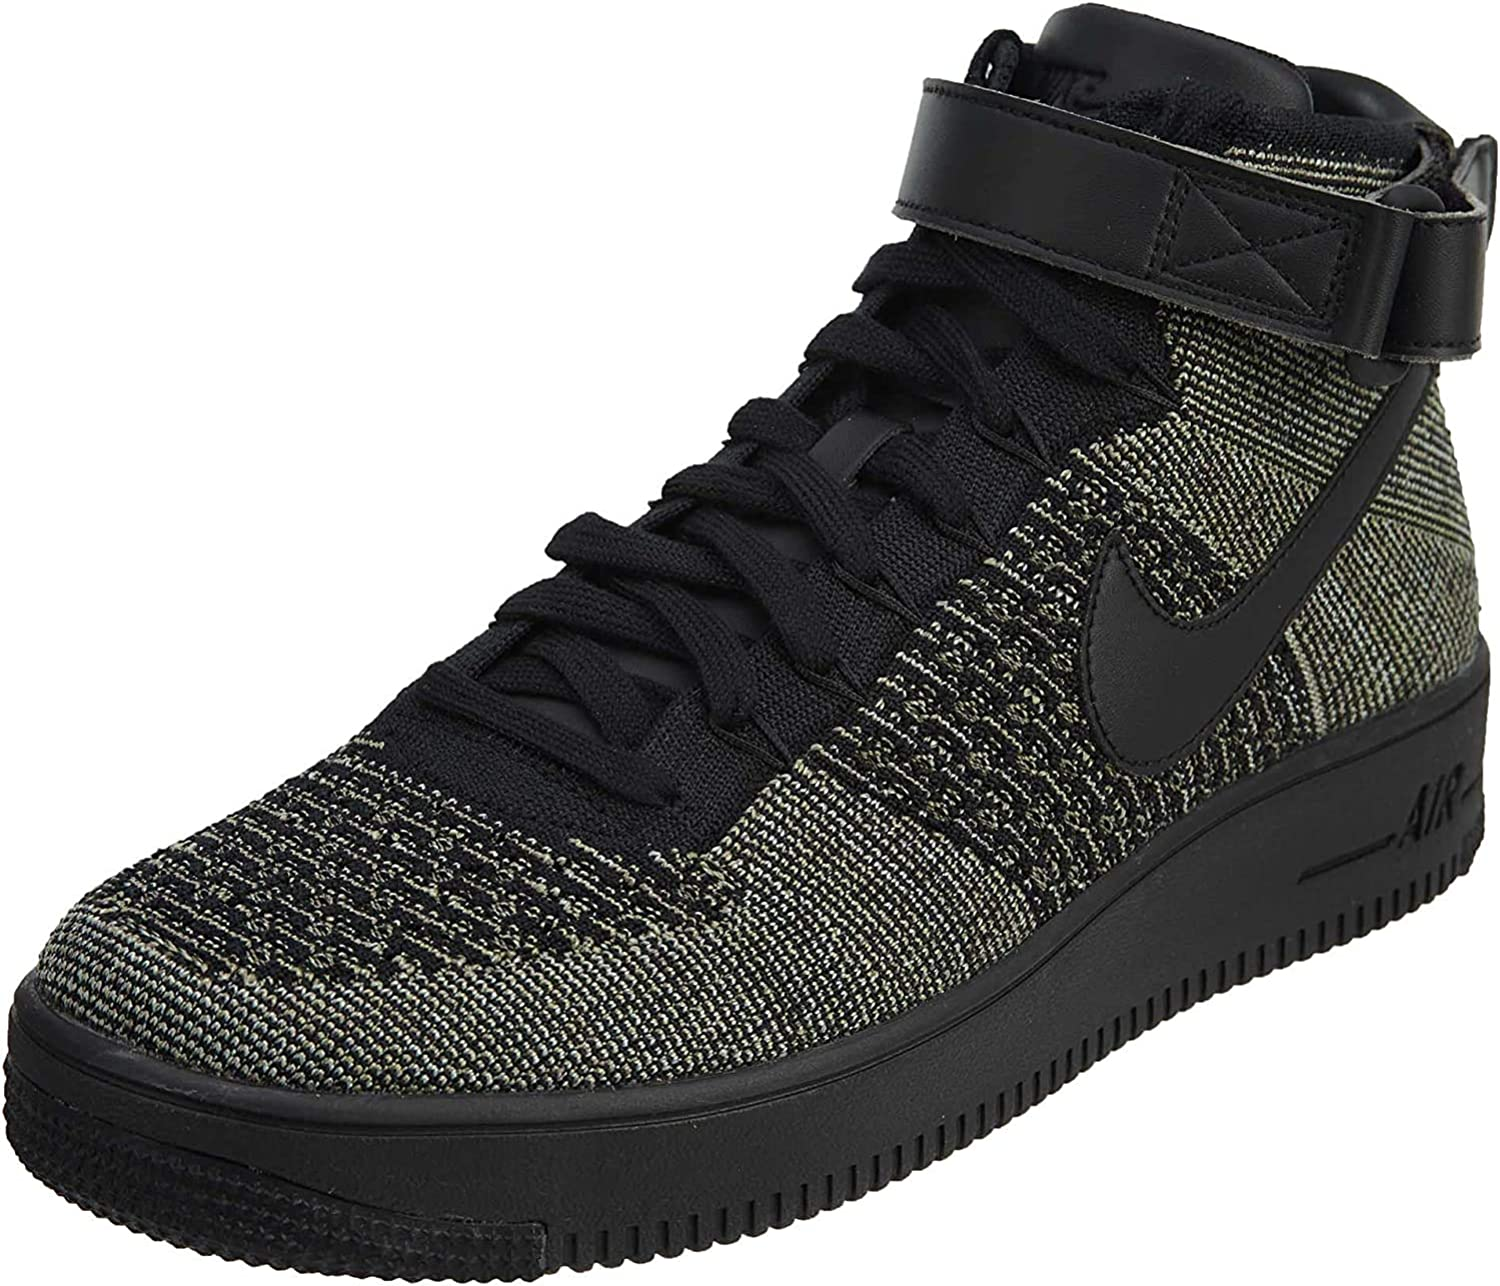 zoo Subir Estacionario  Amazon.com | Nike AF1 Ultra Flyknit MID Mens Basketball-Shoes 817420 |  Basketball